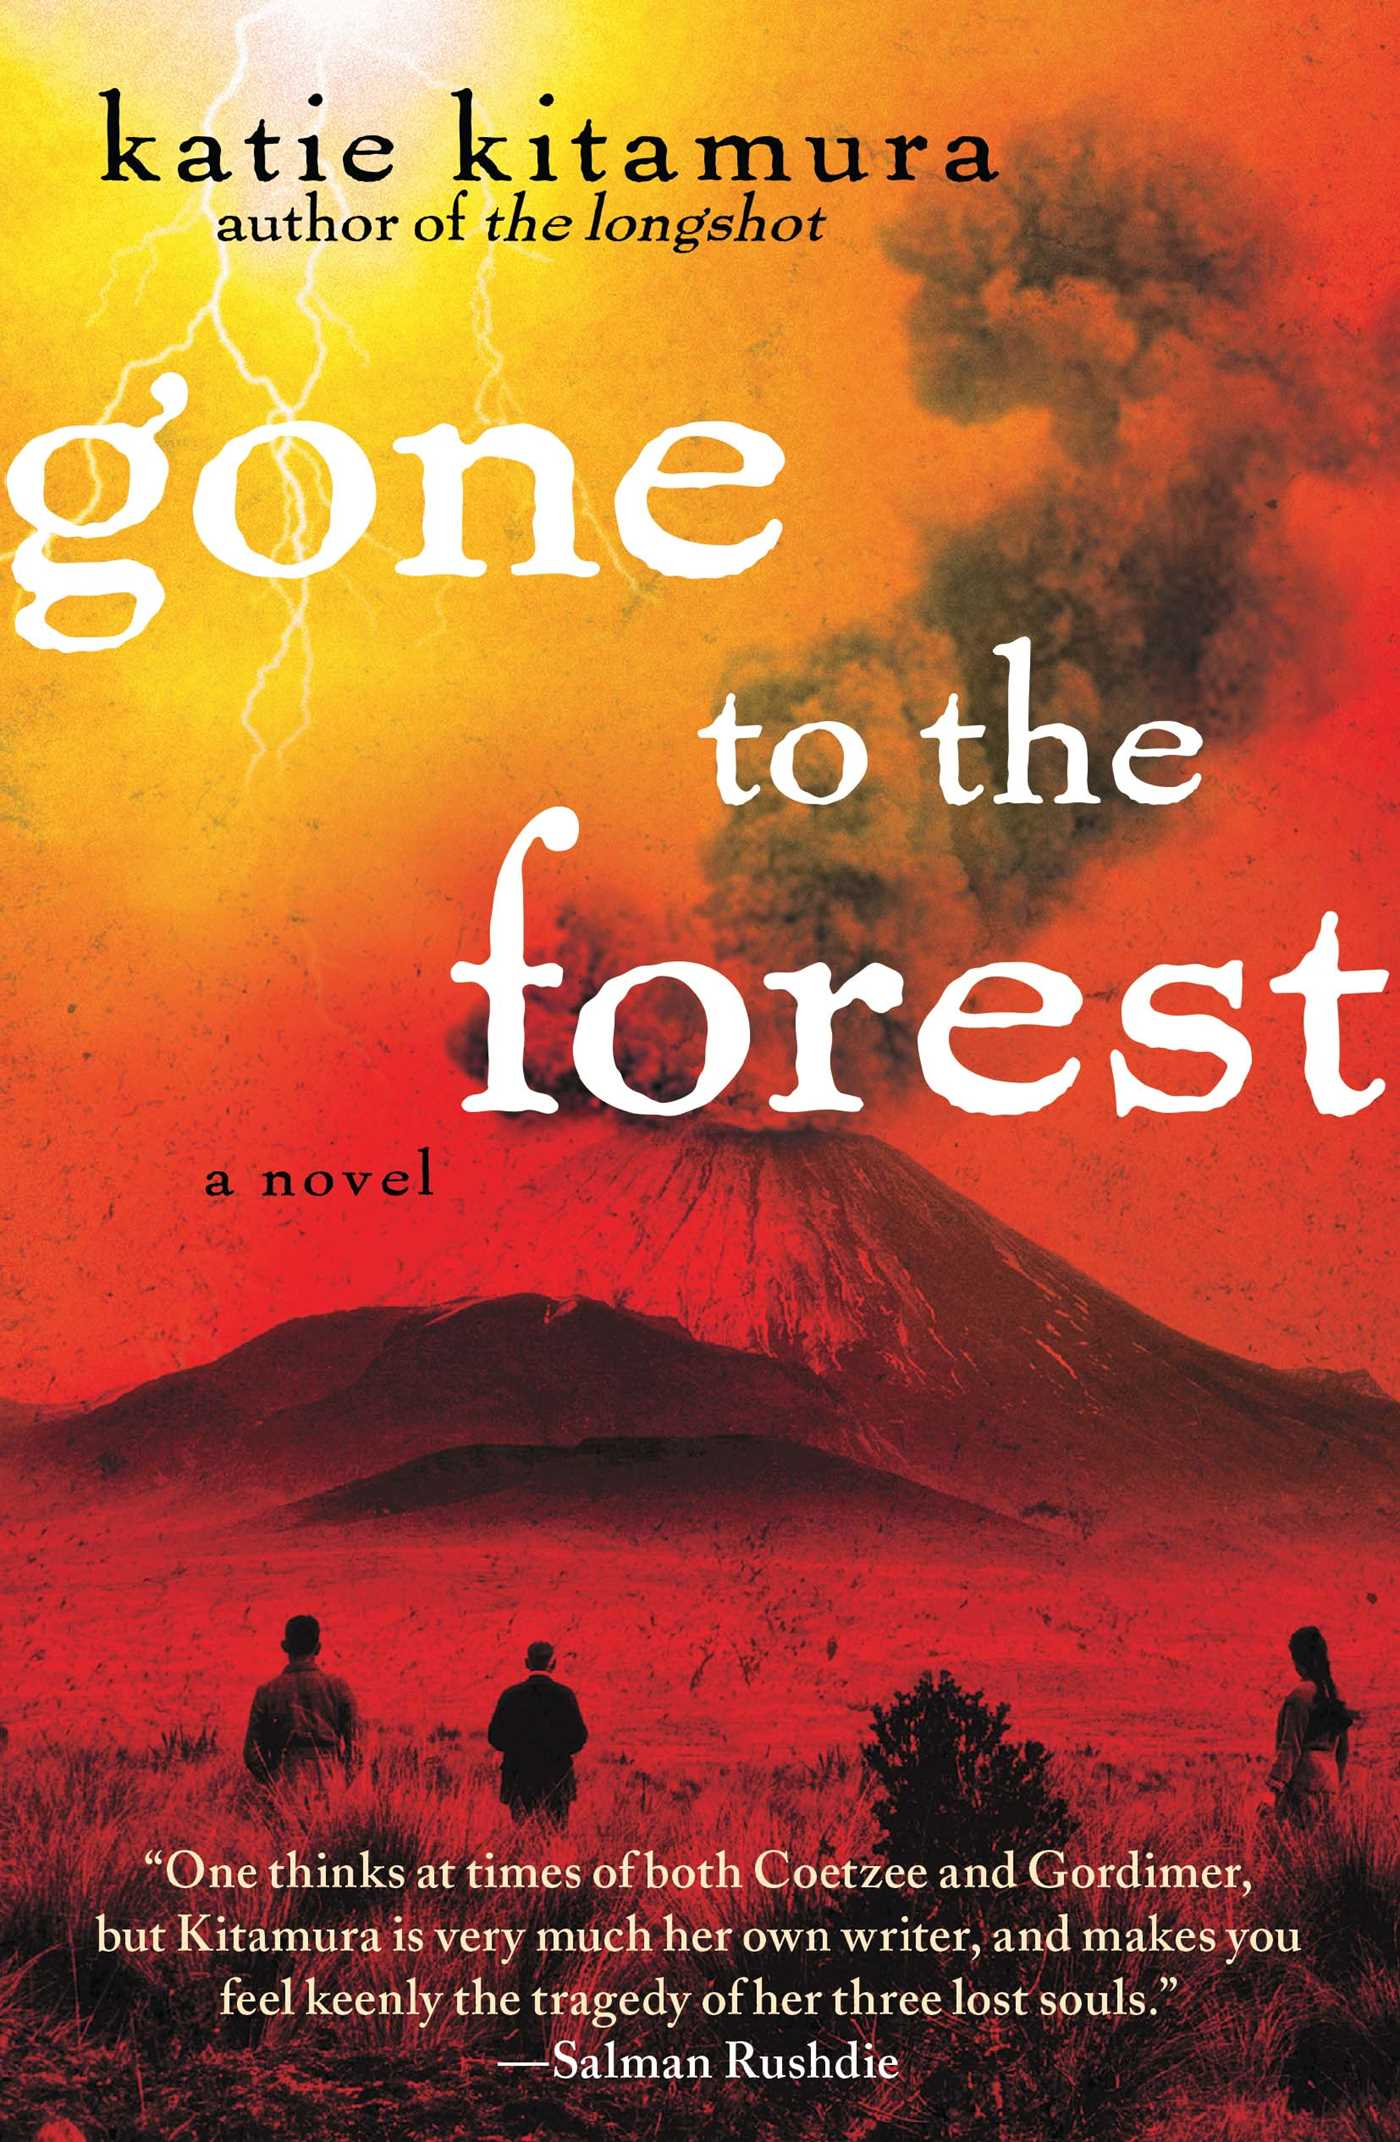 Gone-to-the-forest-9781451656640_hr